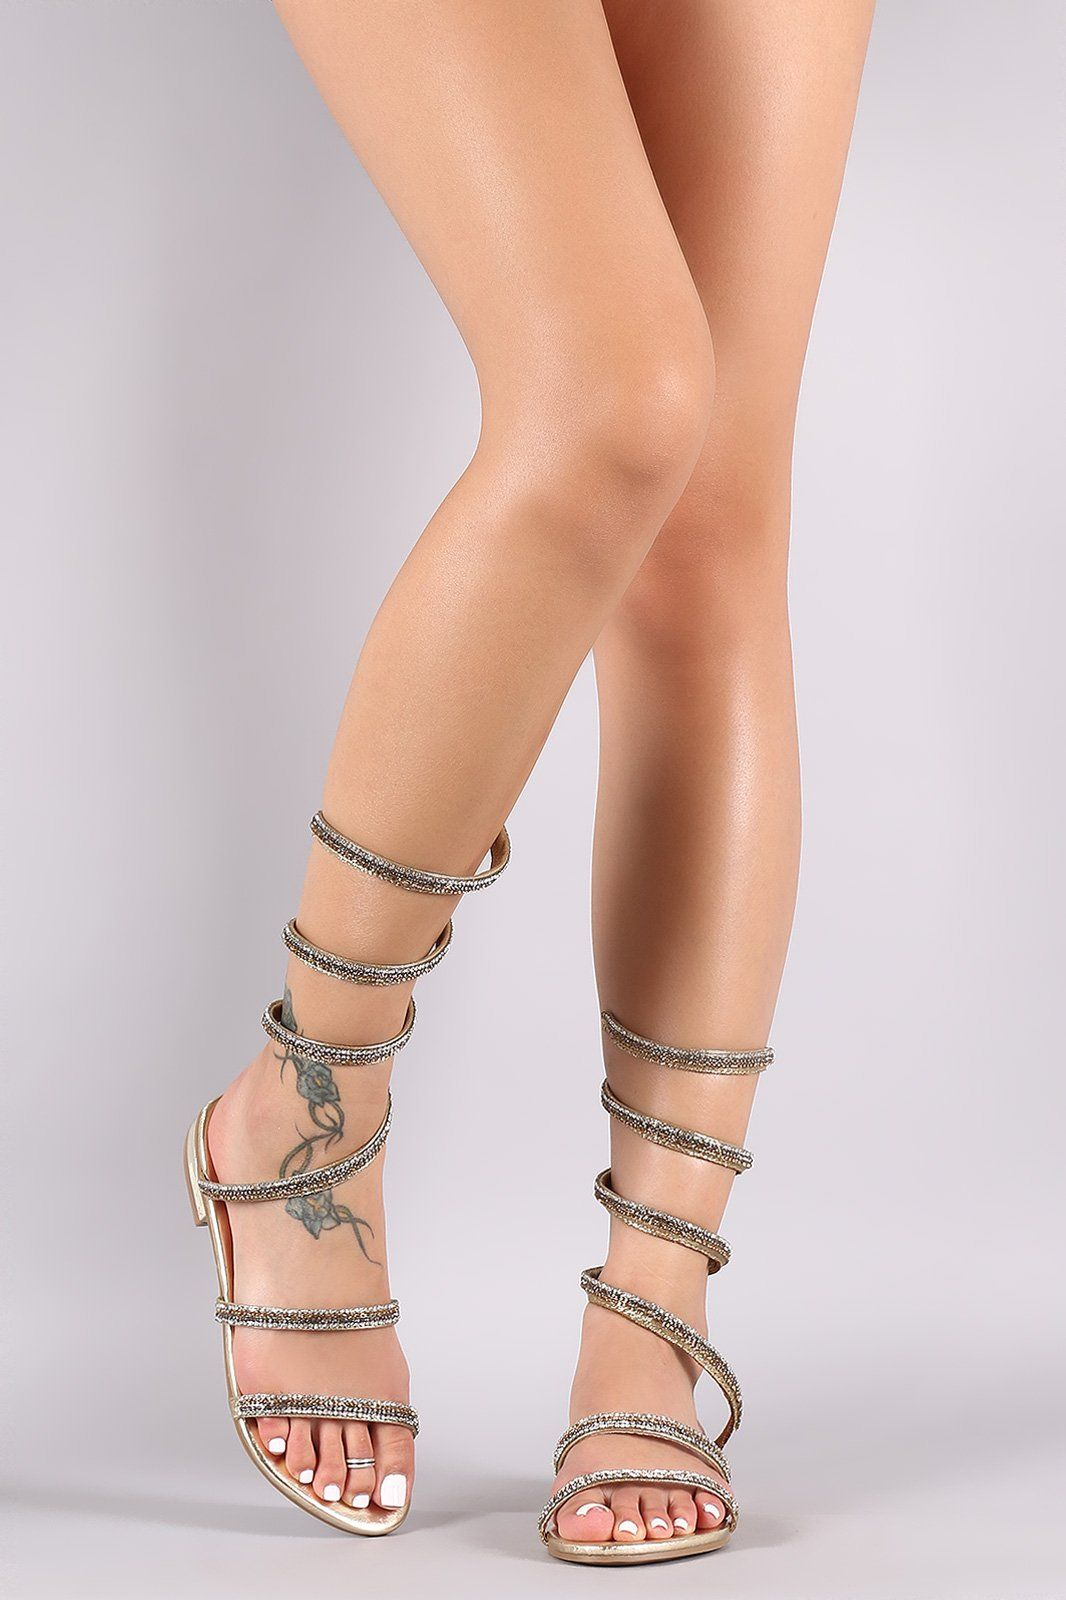 5084a9dce This fabulous flat sandal features an open toe silhouette ...